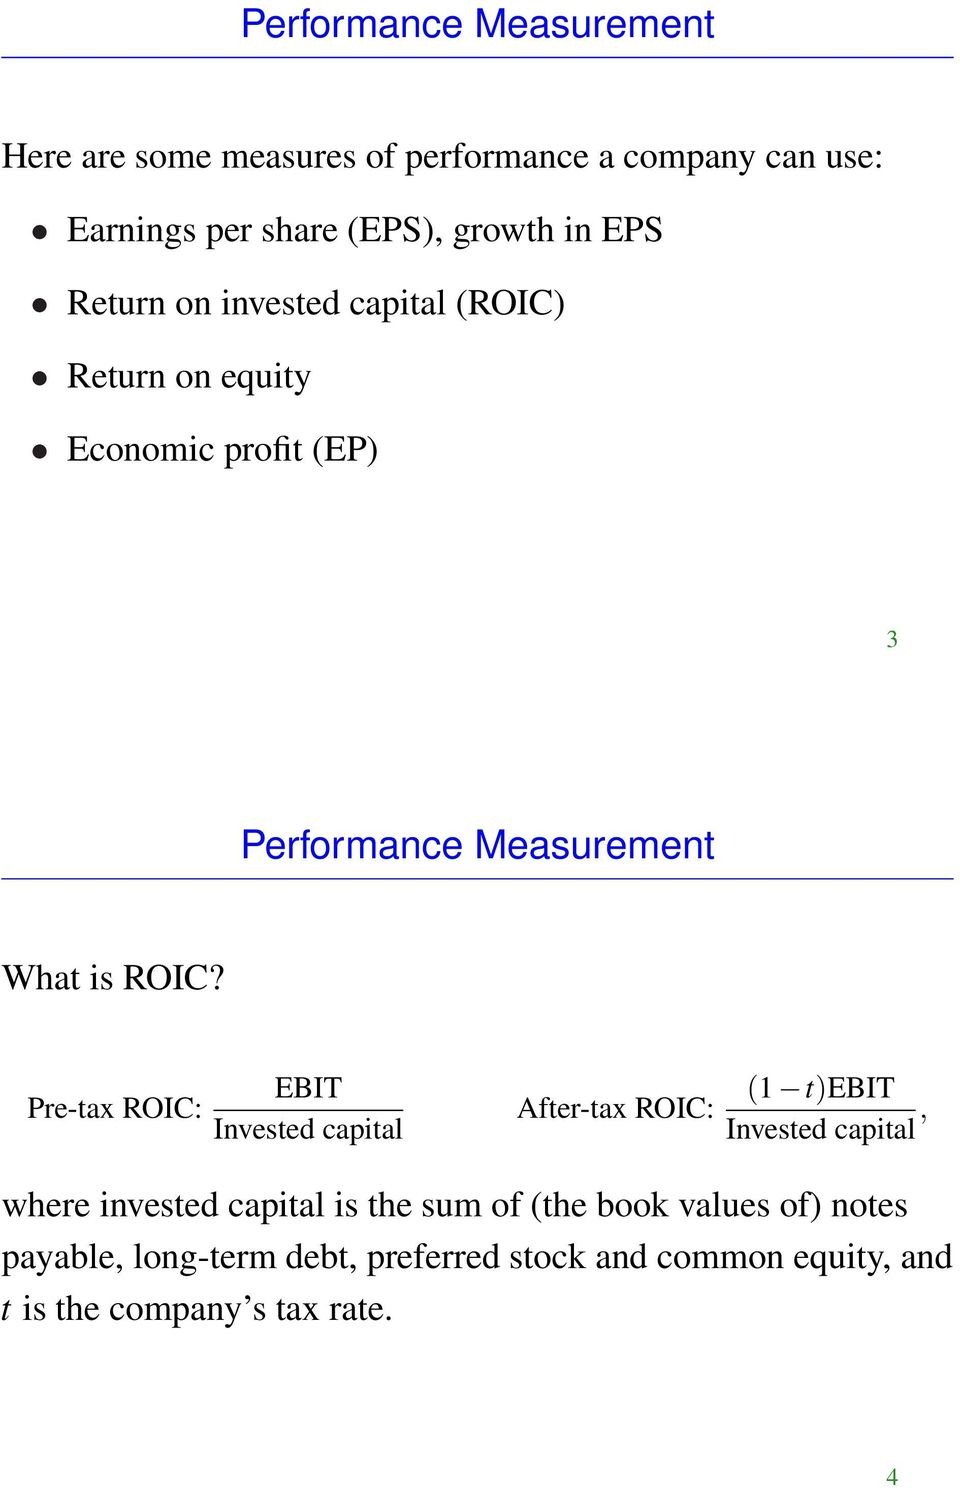 Pre-tax ROIC: EBIT Invested capital After-tax ROIC: (1 t)ebit Invested capital, where invested capital is the sum of